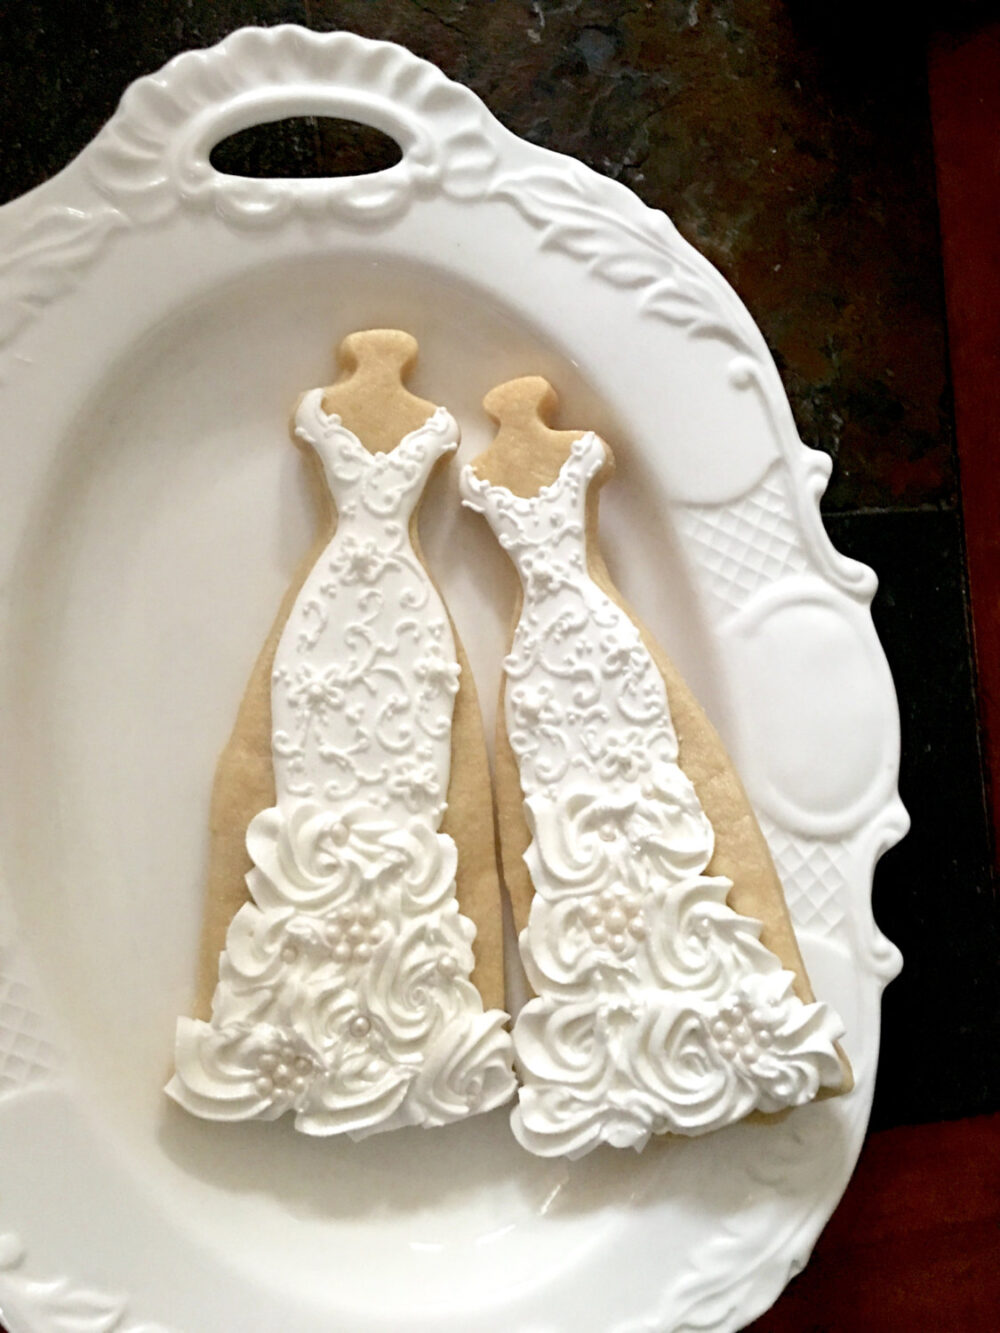 10 Lace, Rosette Ruffles, & Pearls Gown Cookies-Lace Wedding Dress Cookies, Bridal Shower